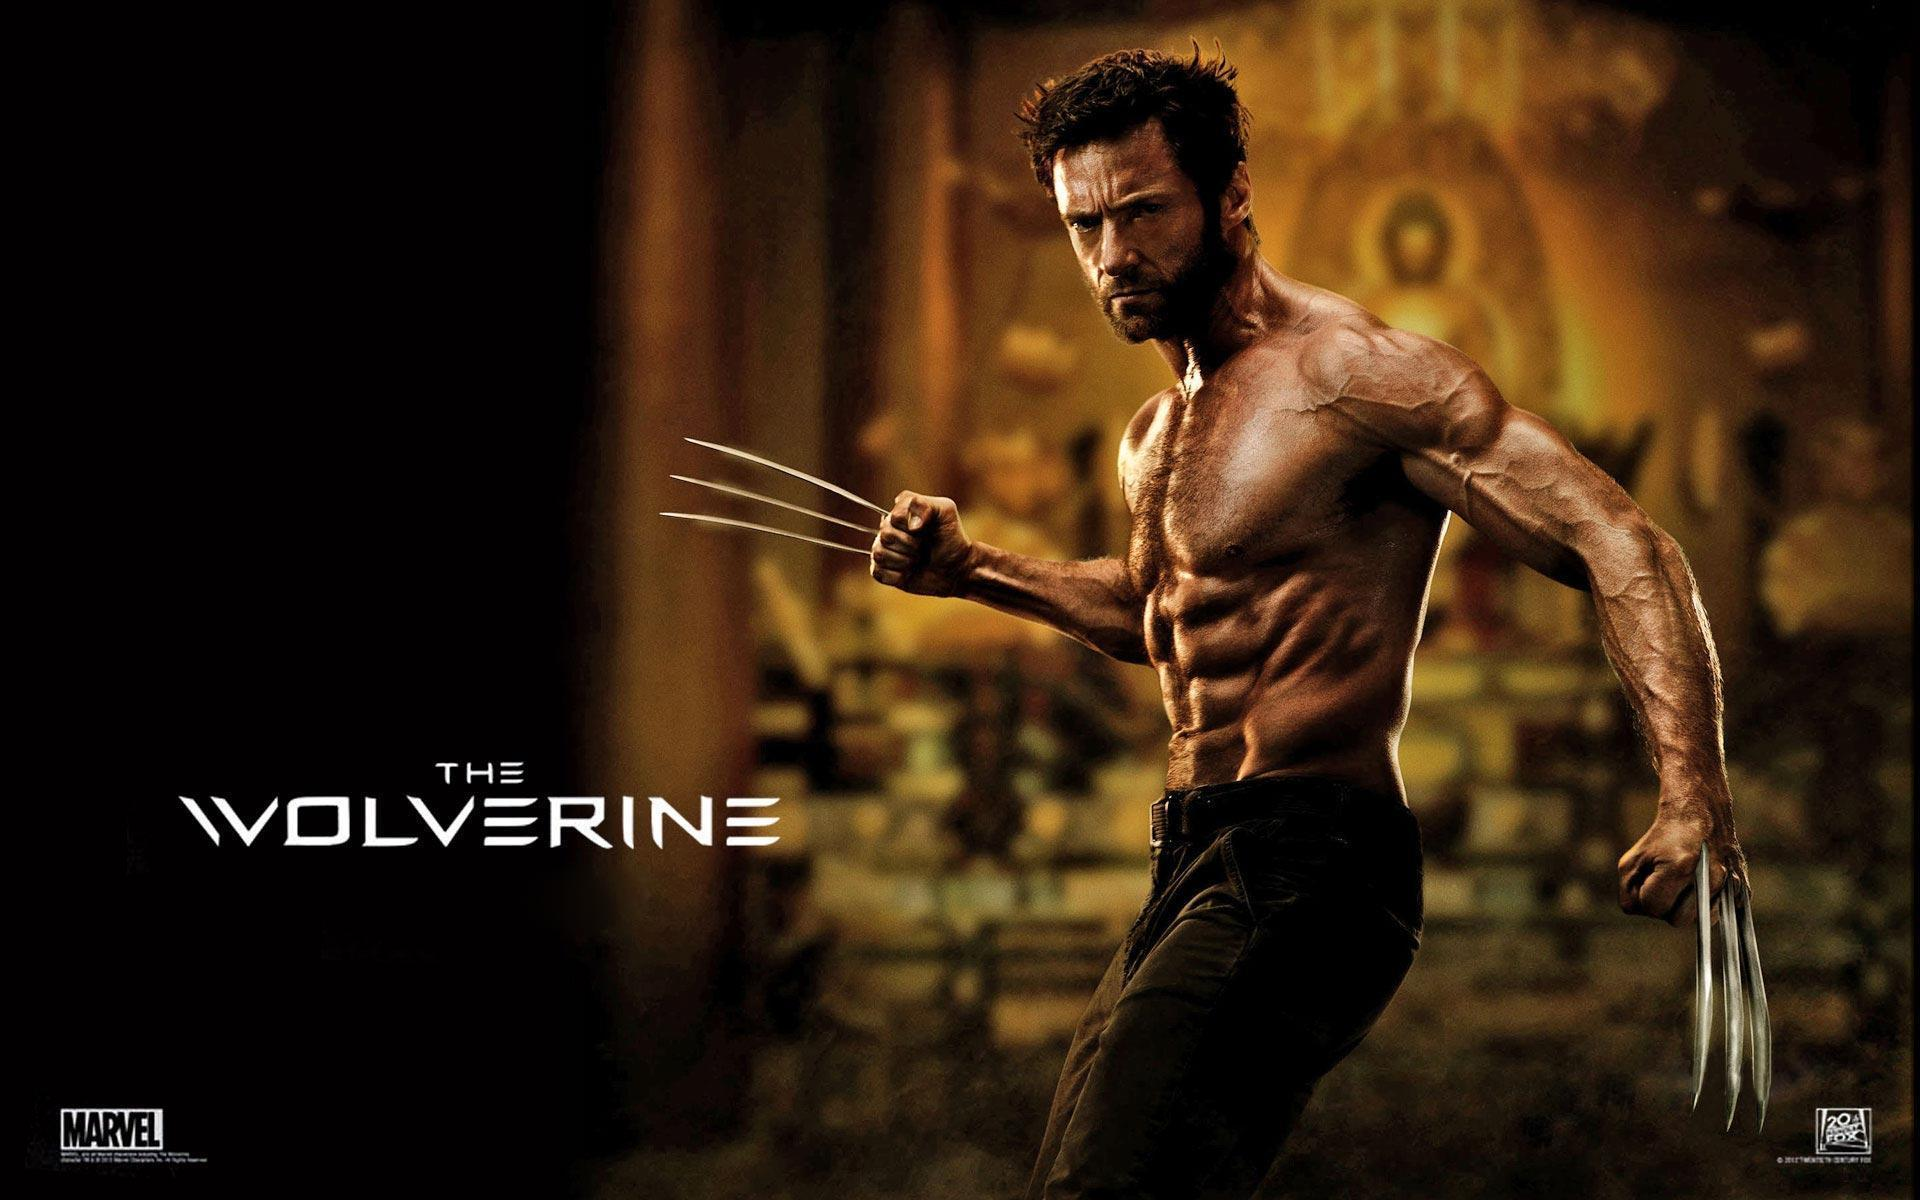 wolverine hd wallpapers - photo #24